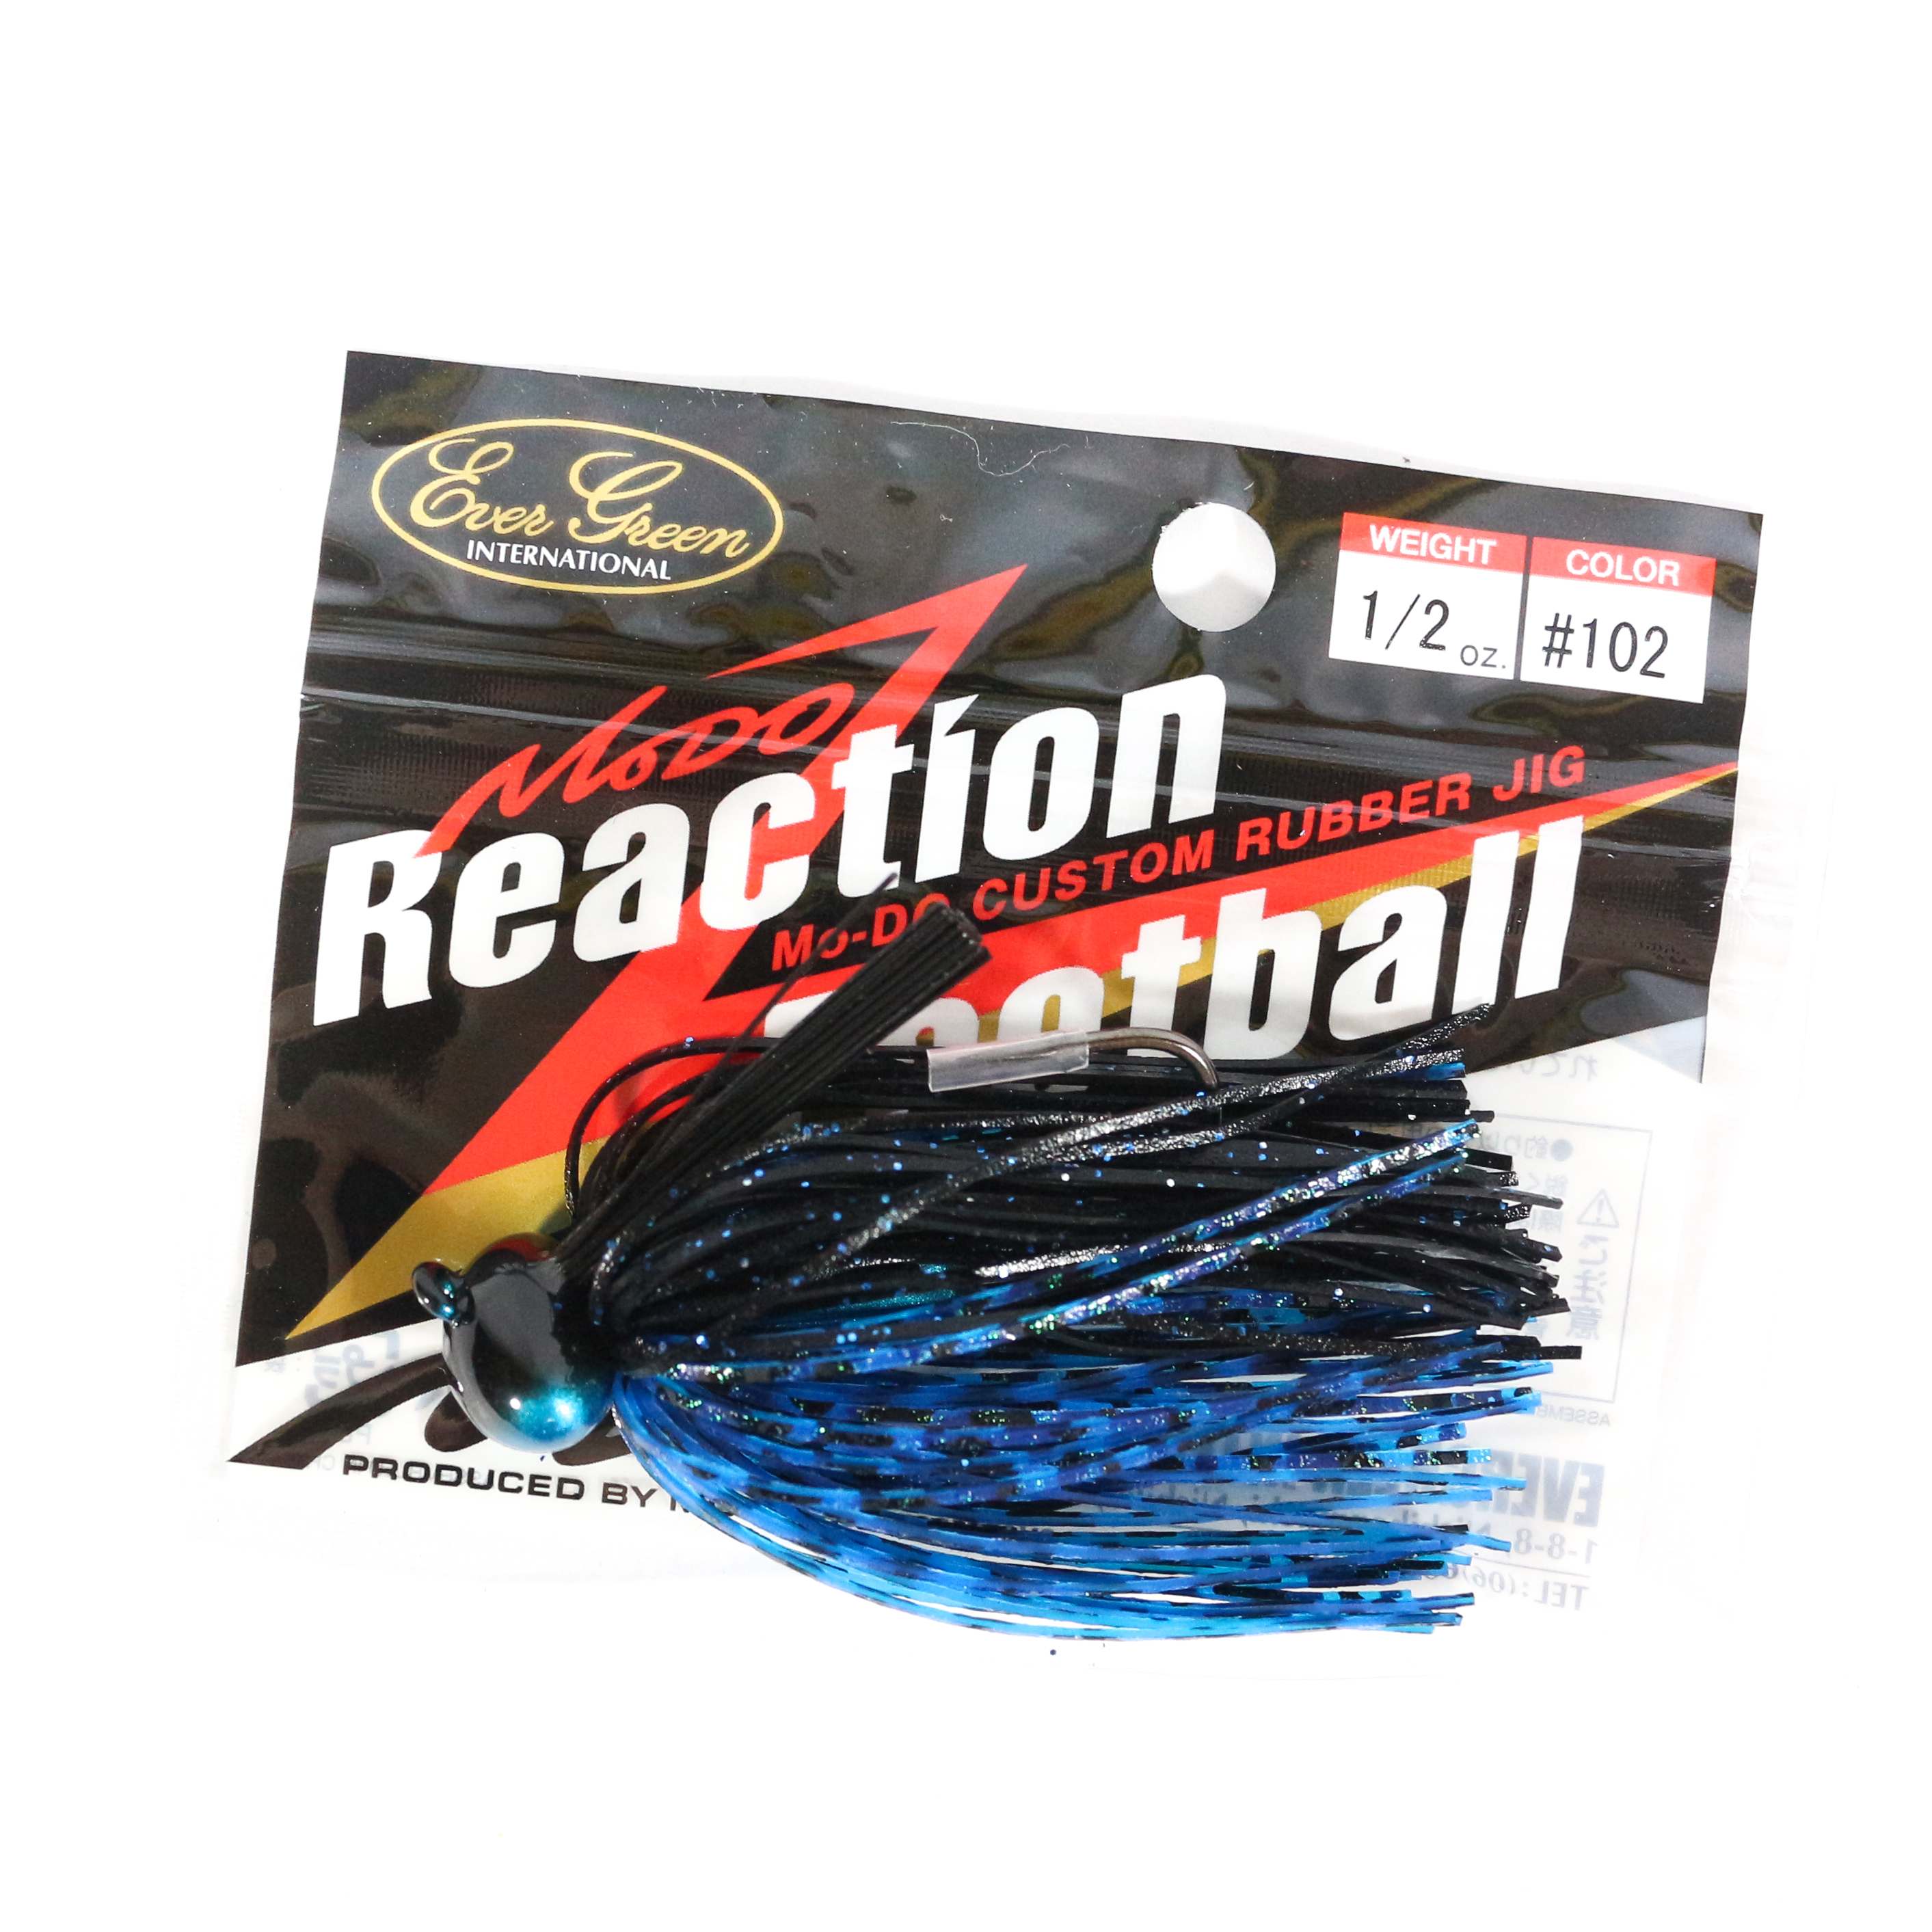 Evergreen Reaction Football Casting Jig 1/2 oz 102 (2323)